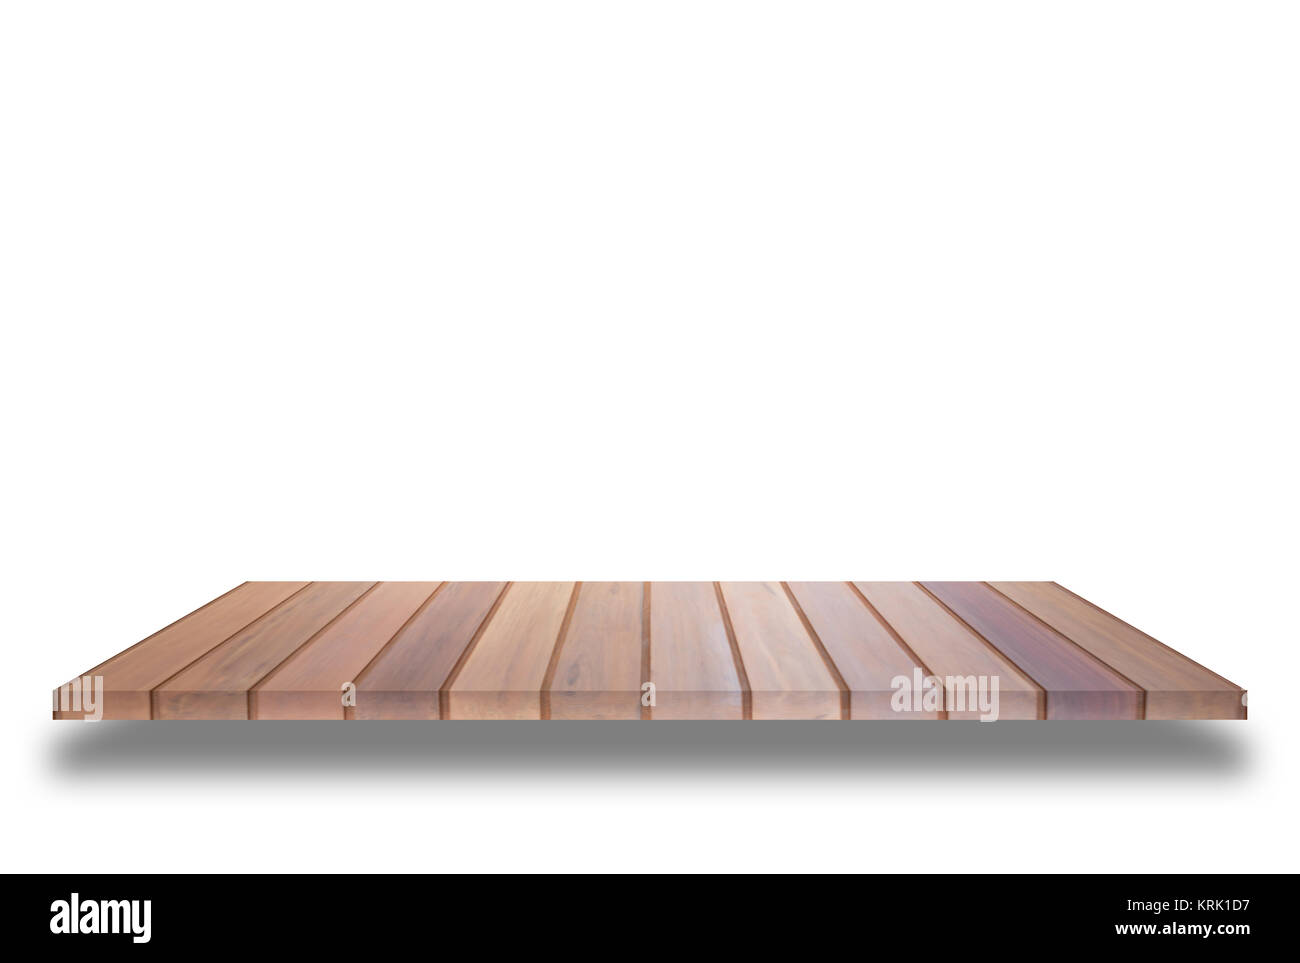 Brown wooden shelf isolated on white background - Stock Image